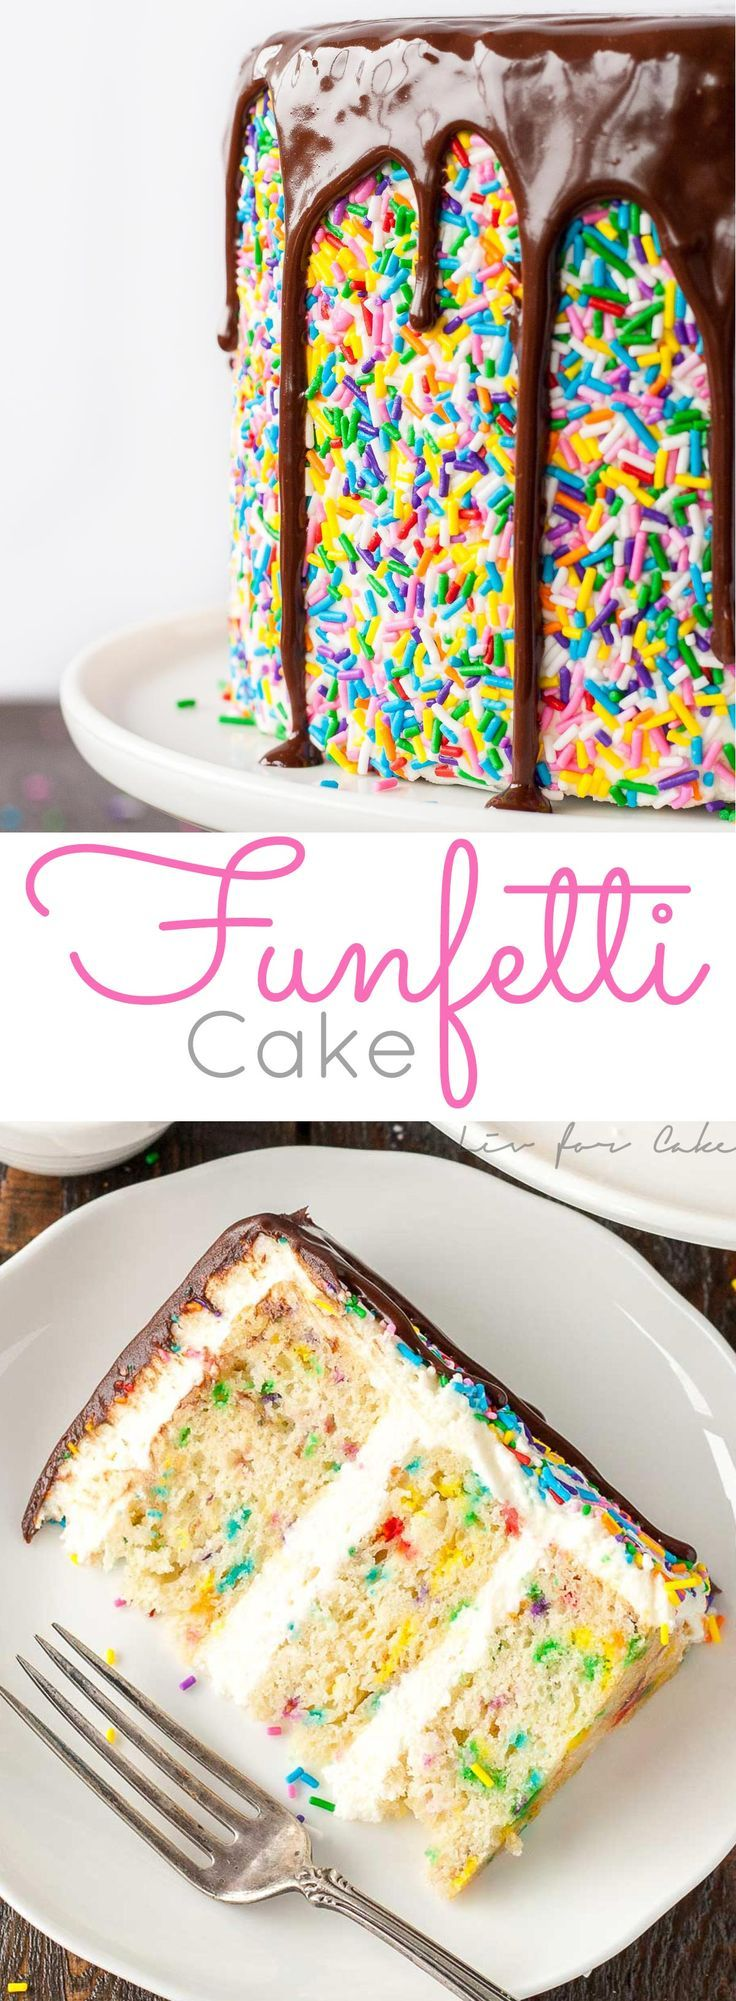 This sprinkle studded vanilla cake is paired with a fluffy cream cheese frosting and topped with a rich dark chocolate ganache. | livforcake.com